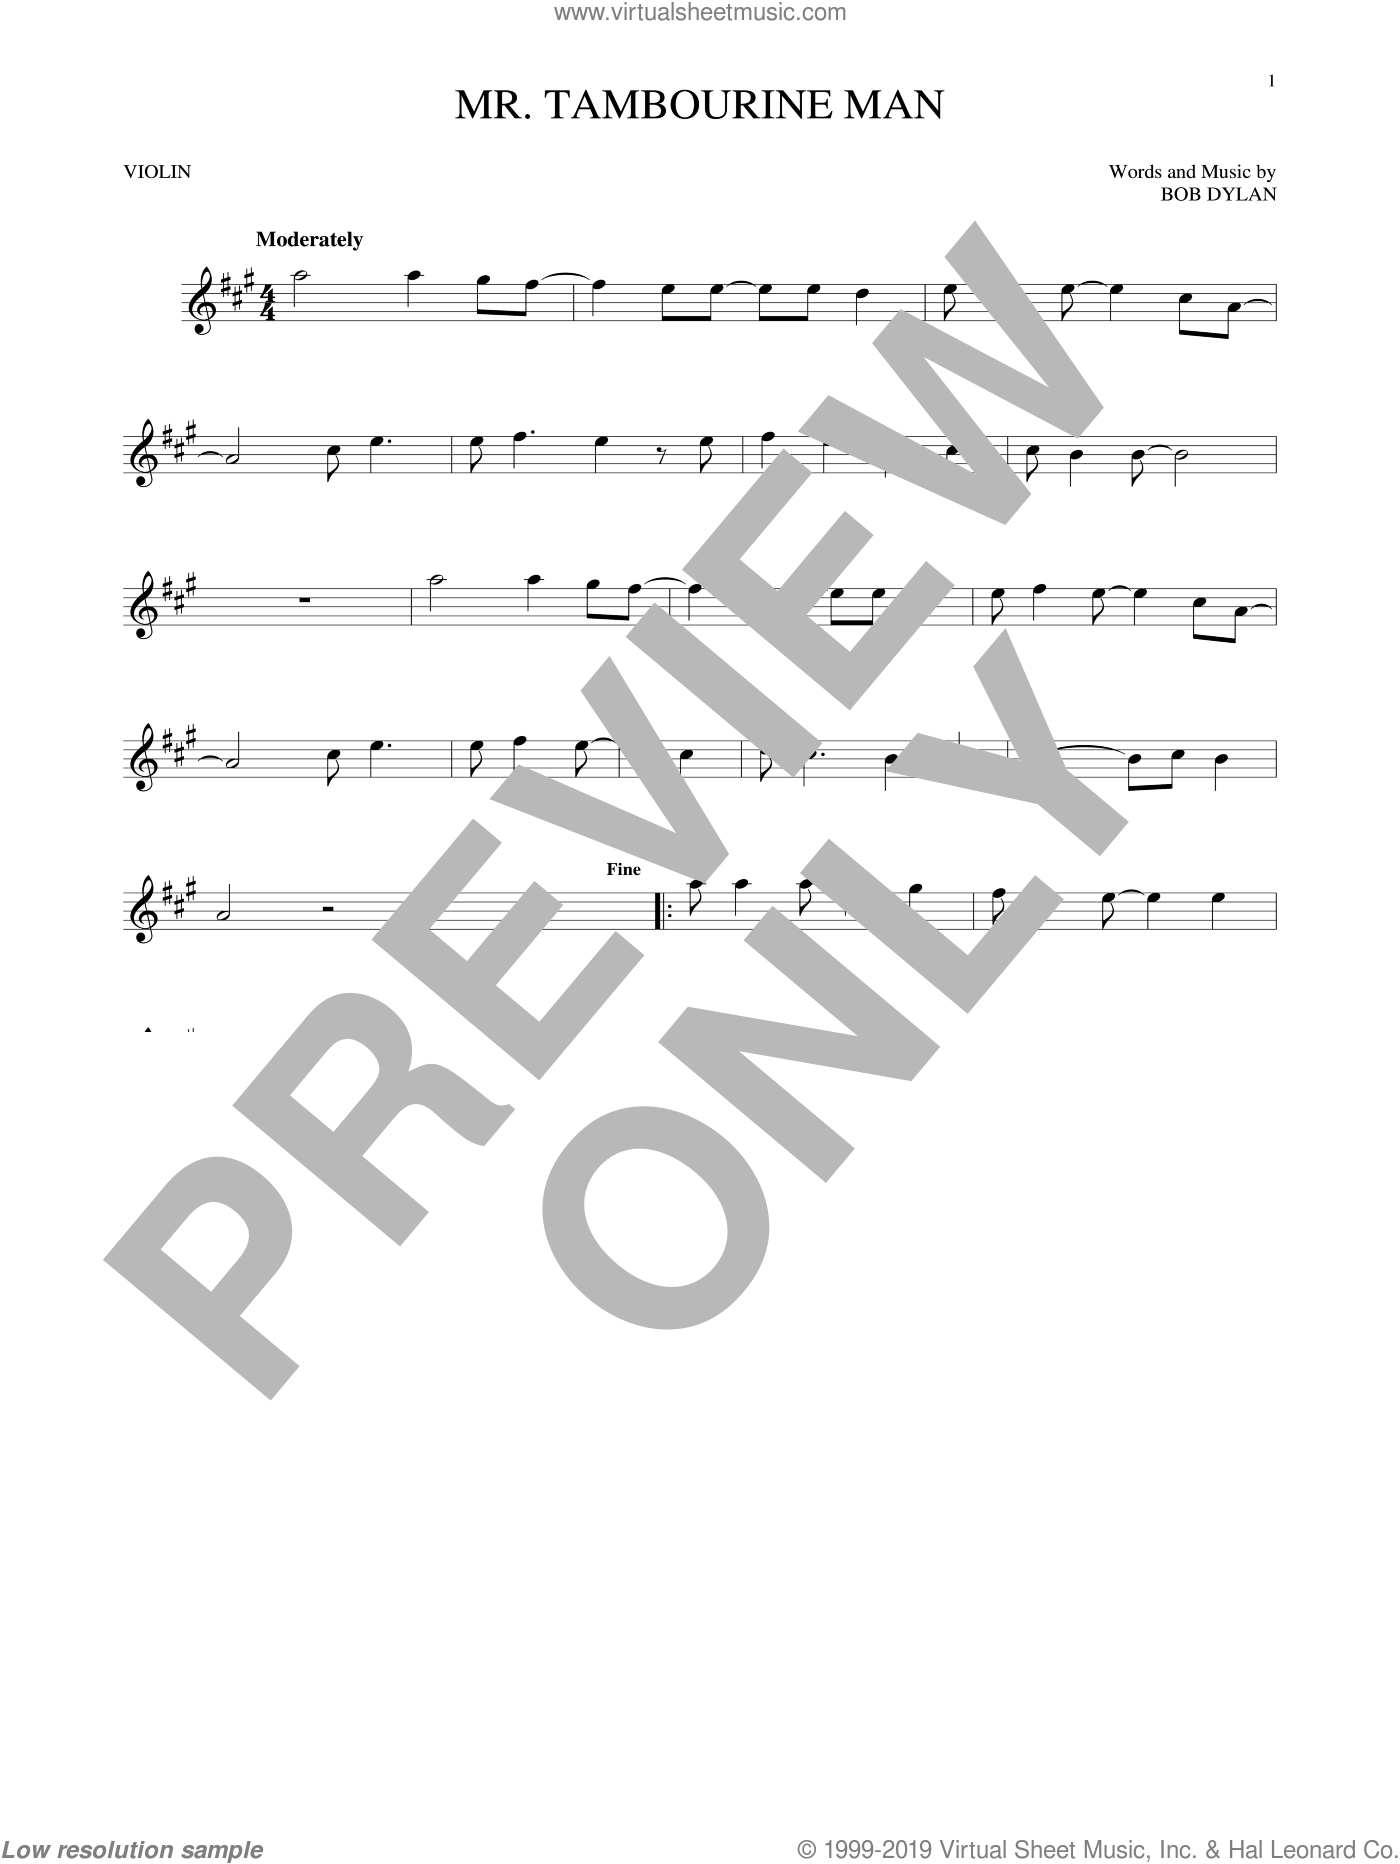 Mr. Tambourine Man sheet music for violin solo by Bob Dylan, intermediate skill level